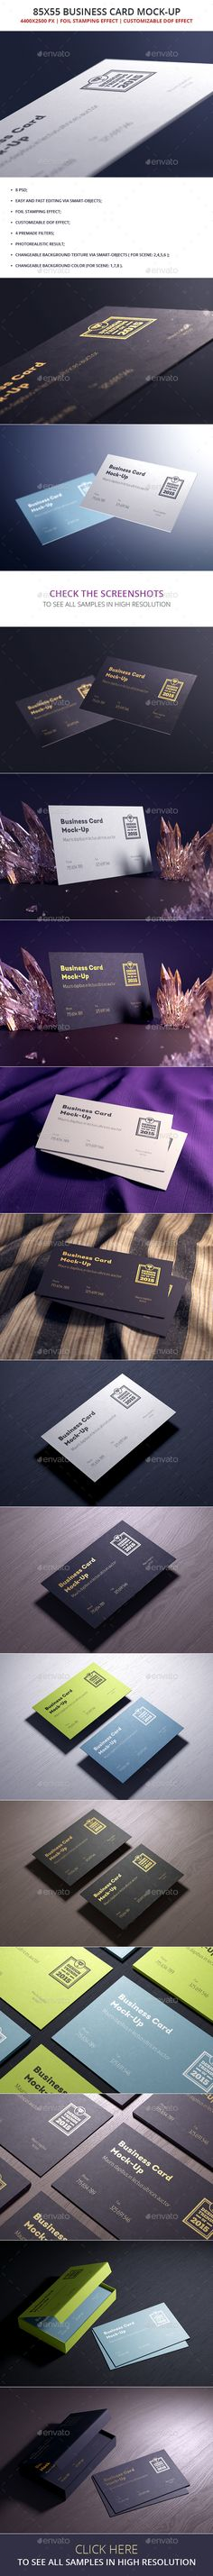 Photorealistic business card mockups design download http photorealistic business card mockups design download httpgraphicriveritemphotorealistic business card mockups13217975refksioks pinterest reheart Gallery